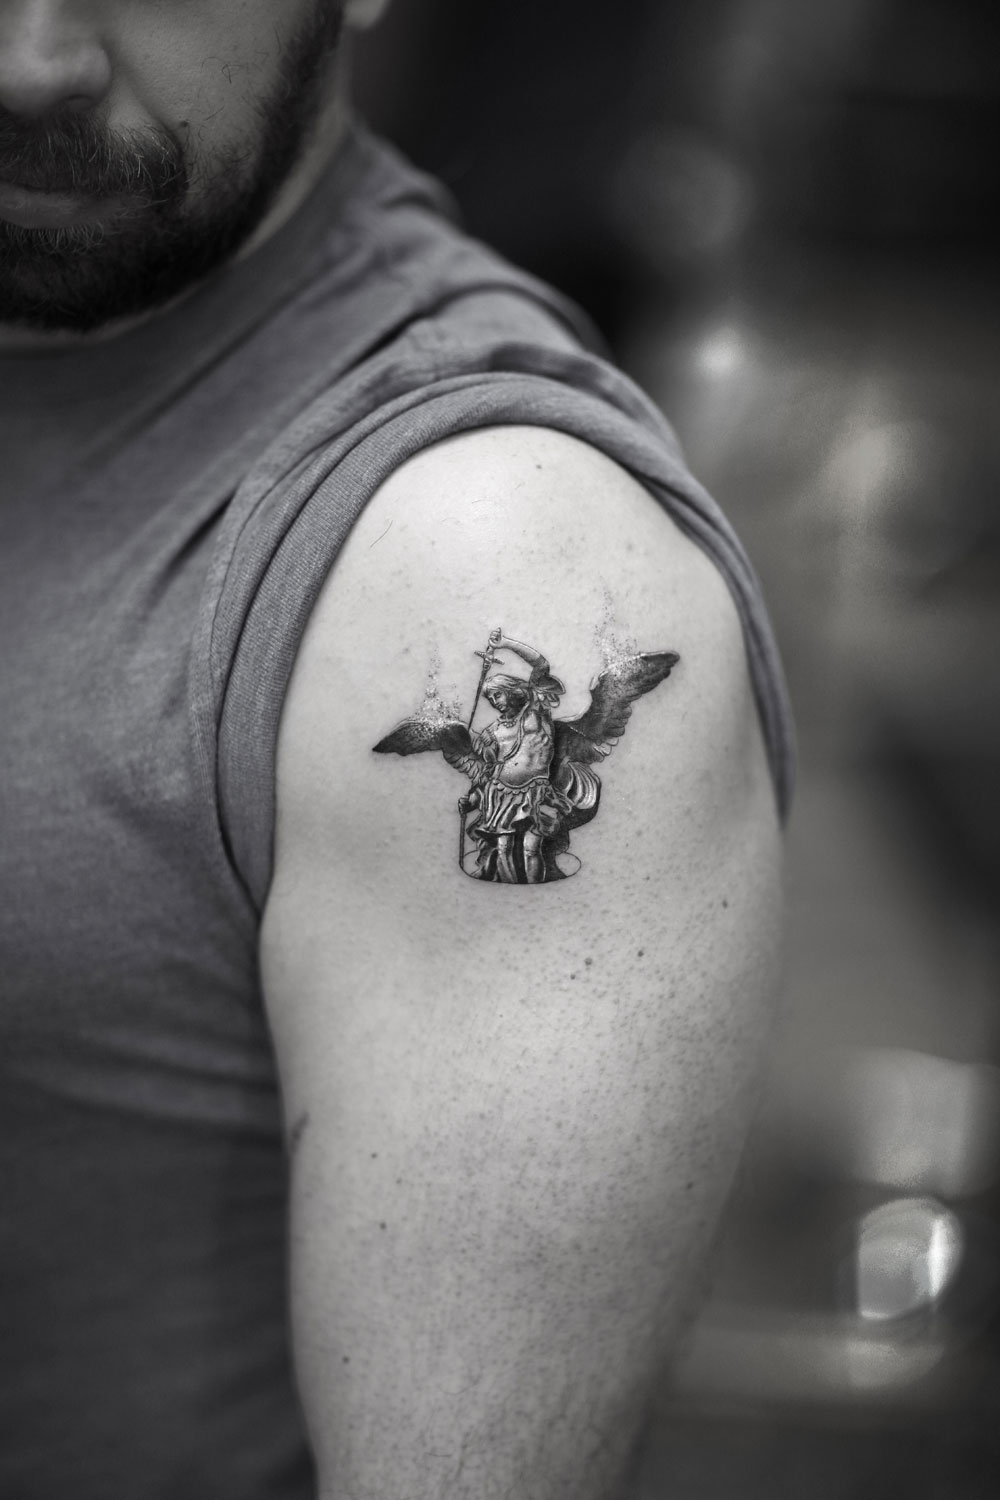 Angel-Saint-Michael-by-Alessandro-Capozzi-in-Aureo-Roma-Tattoo-&-Gallery.jpg